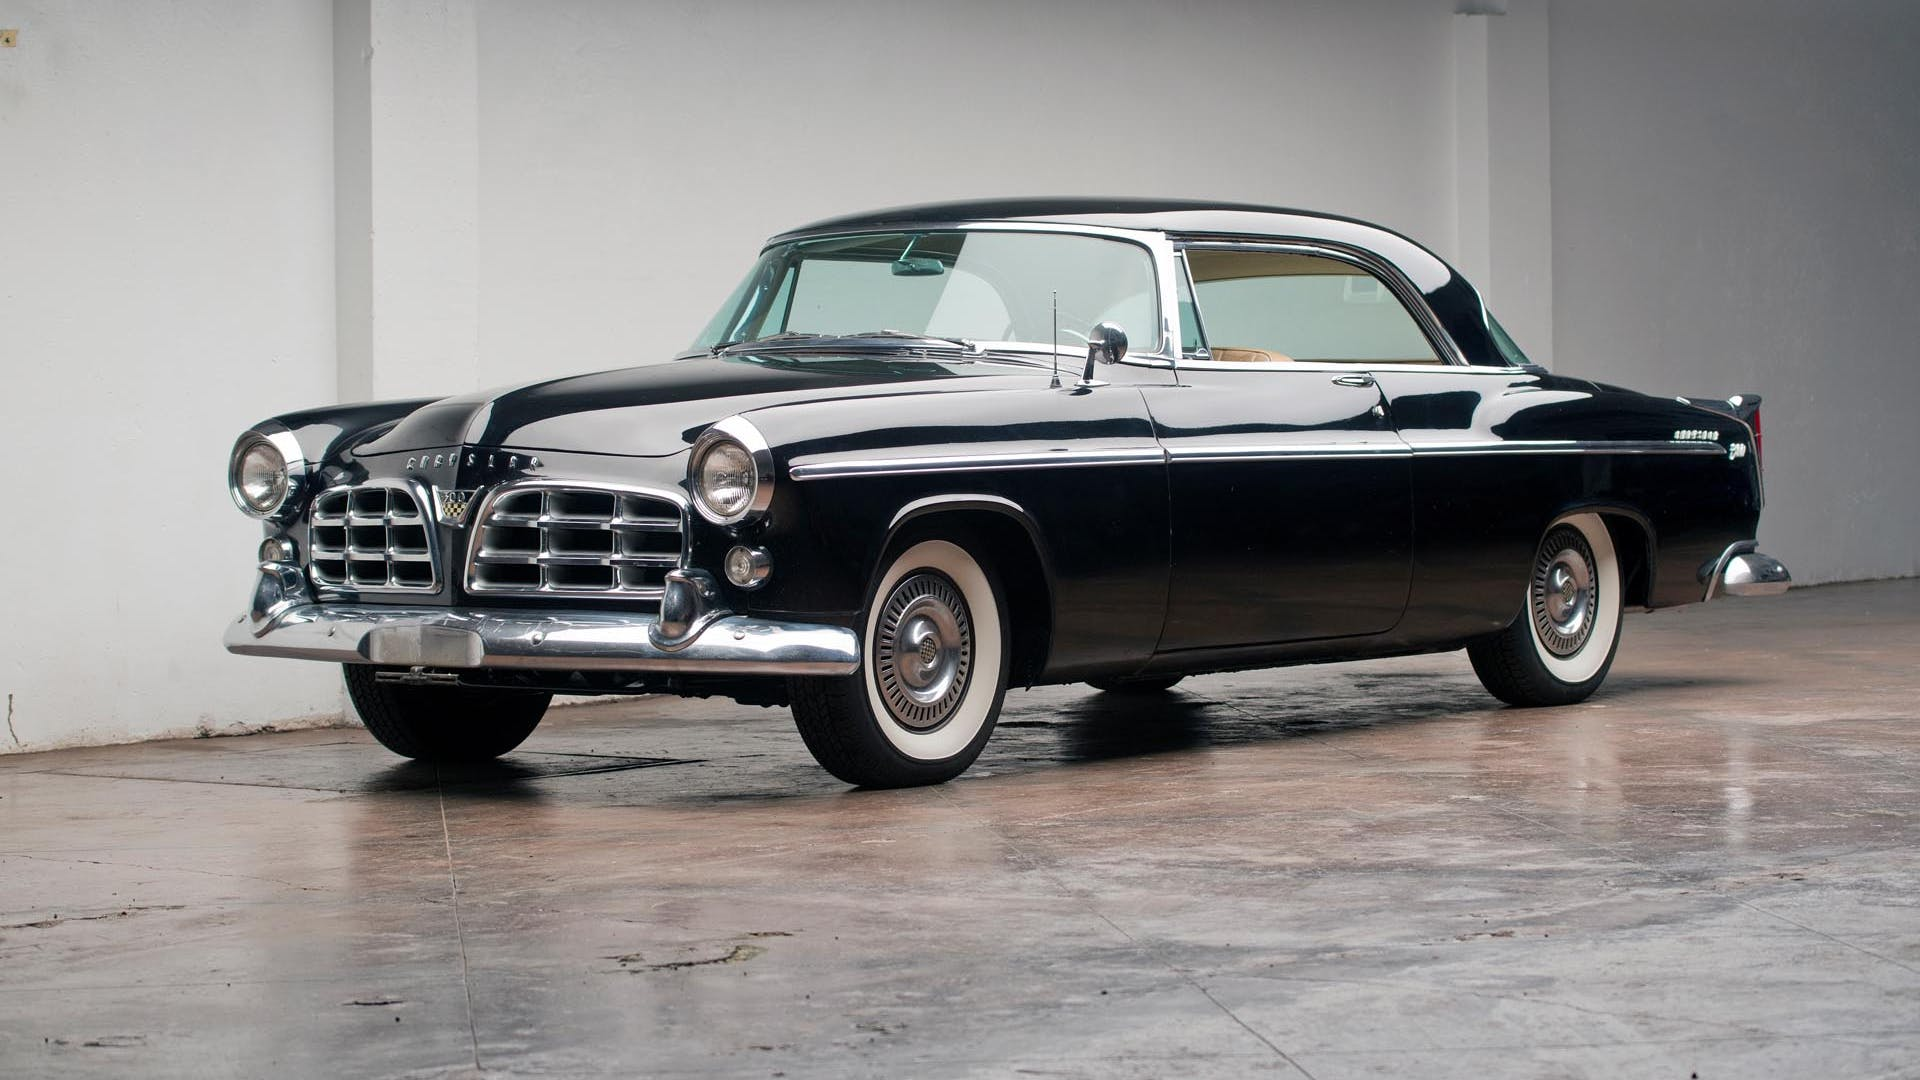 1955 Chrysler 300 in Black front 3/4 View